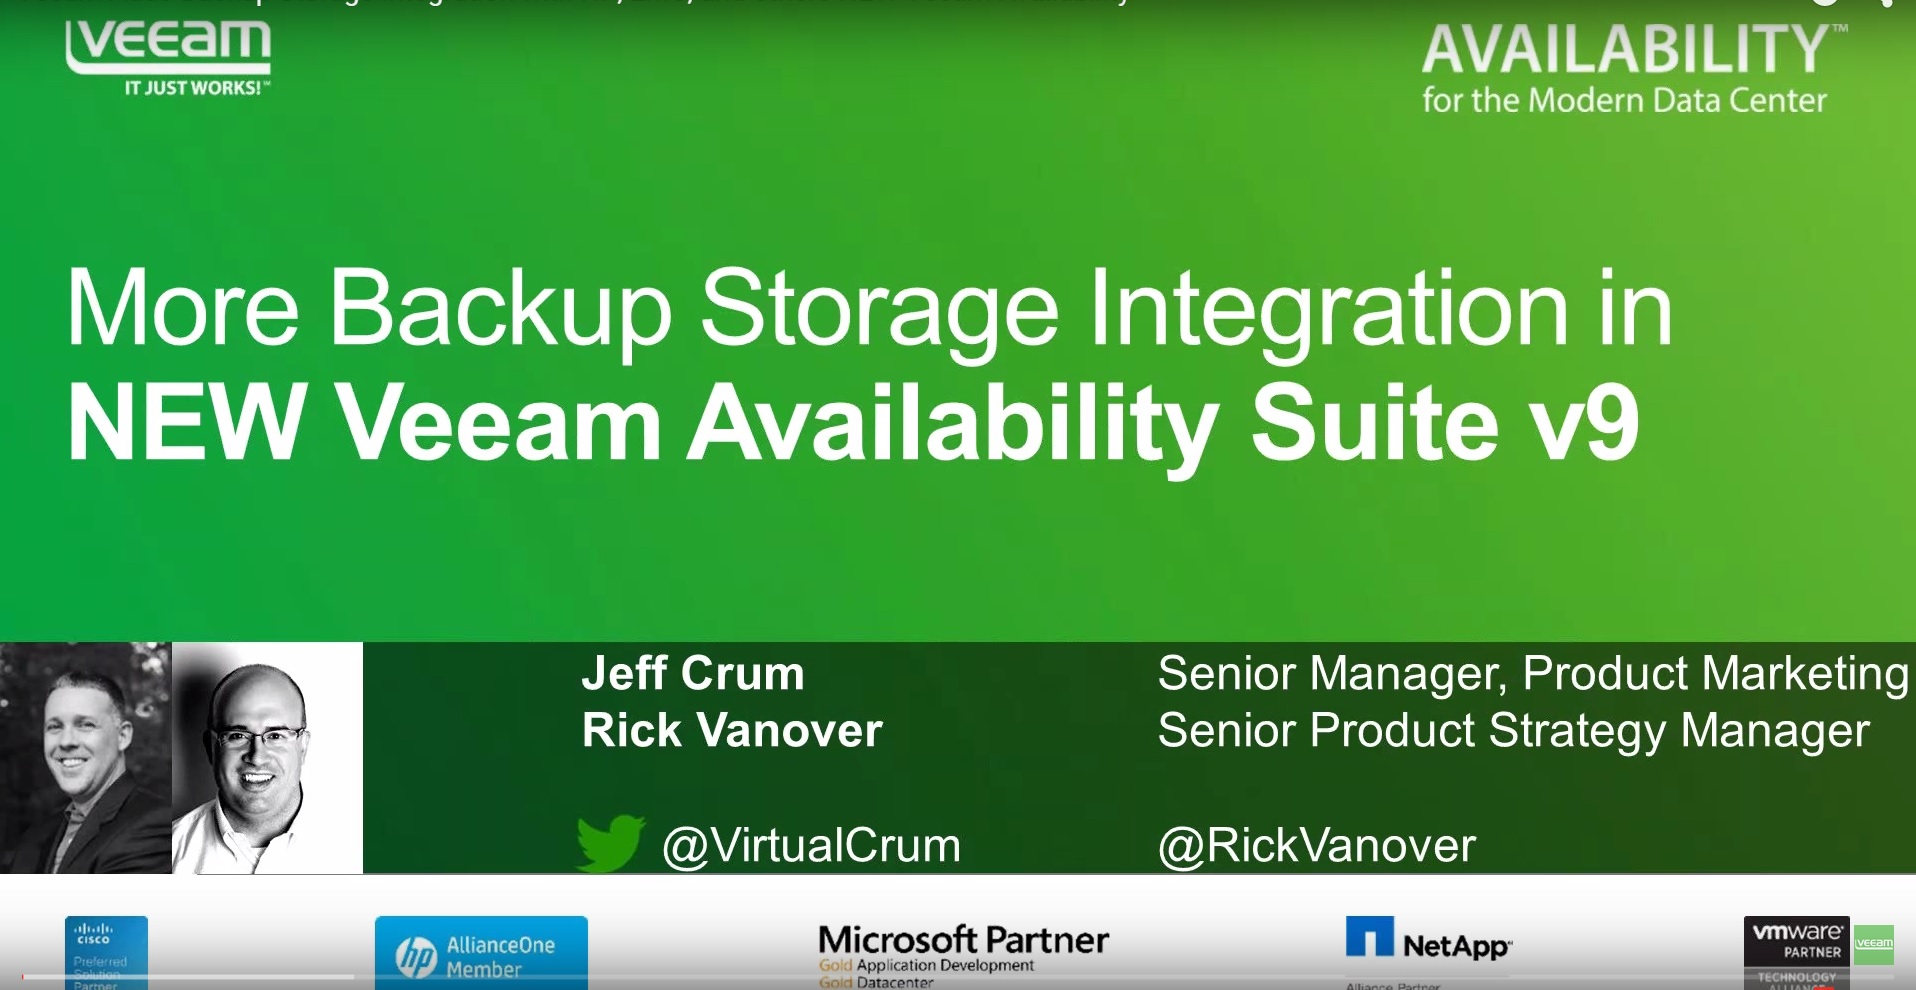 Veeam Adds Backup Storage Integration with HPE, Dell EMC, and others - Veeam Availability Suite